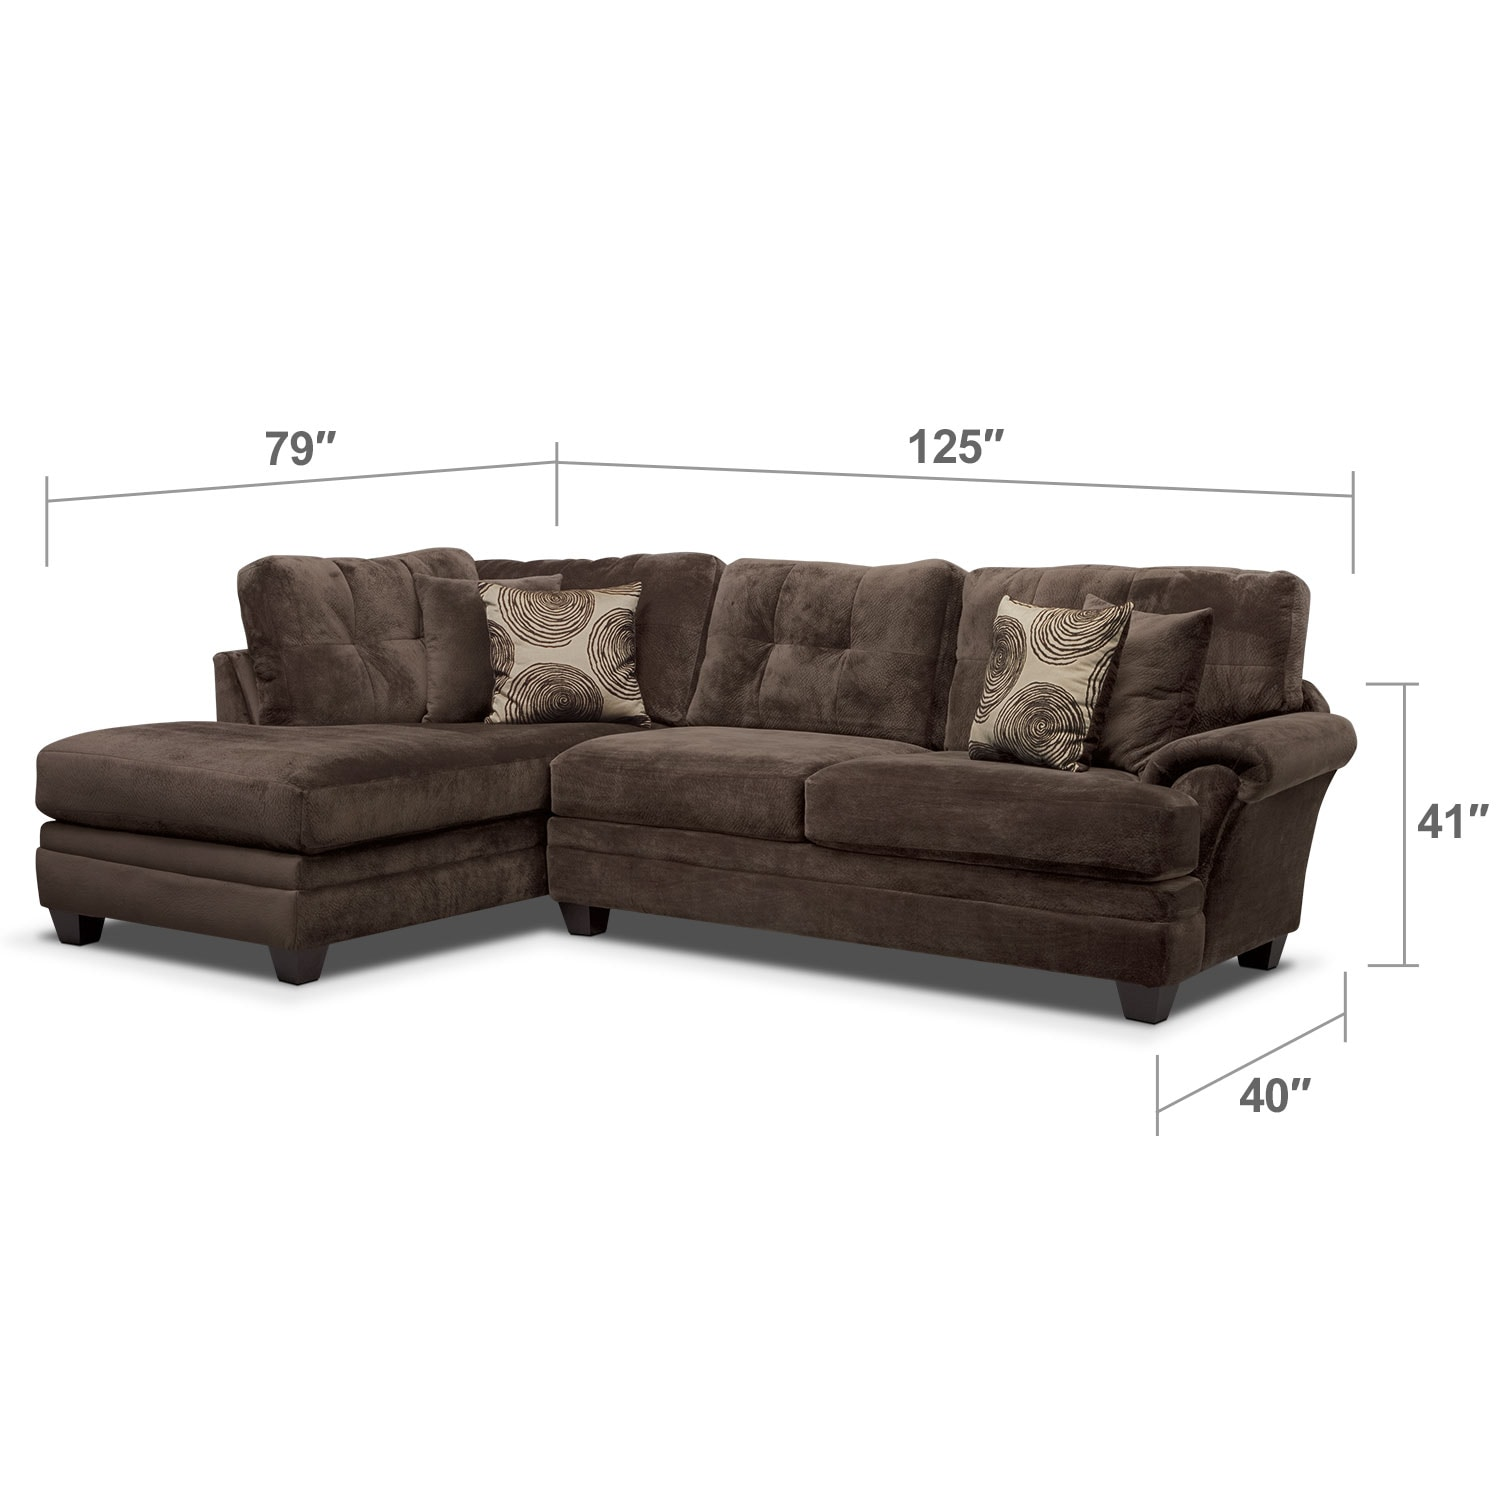 Living Room Furniture - Cordelle 2-Piece Left-Facing Chaise Sectional - Chocolate